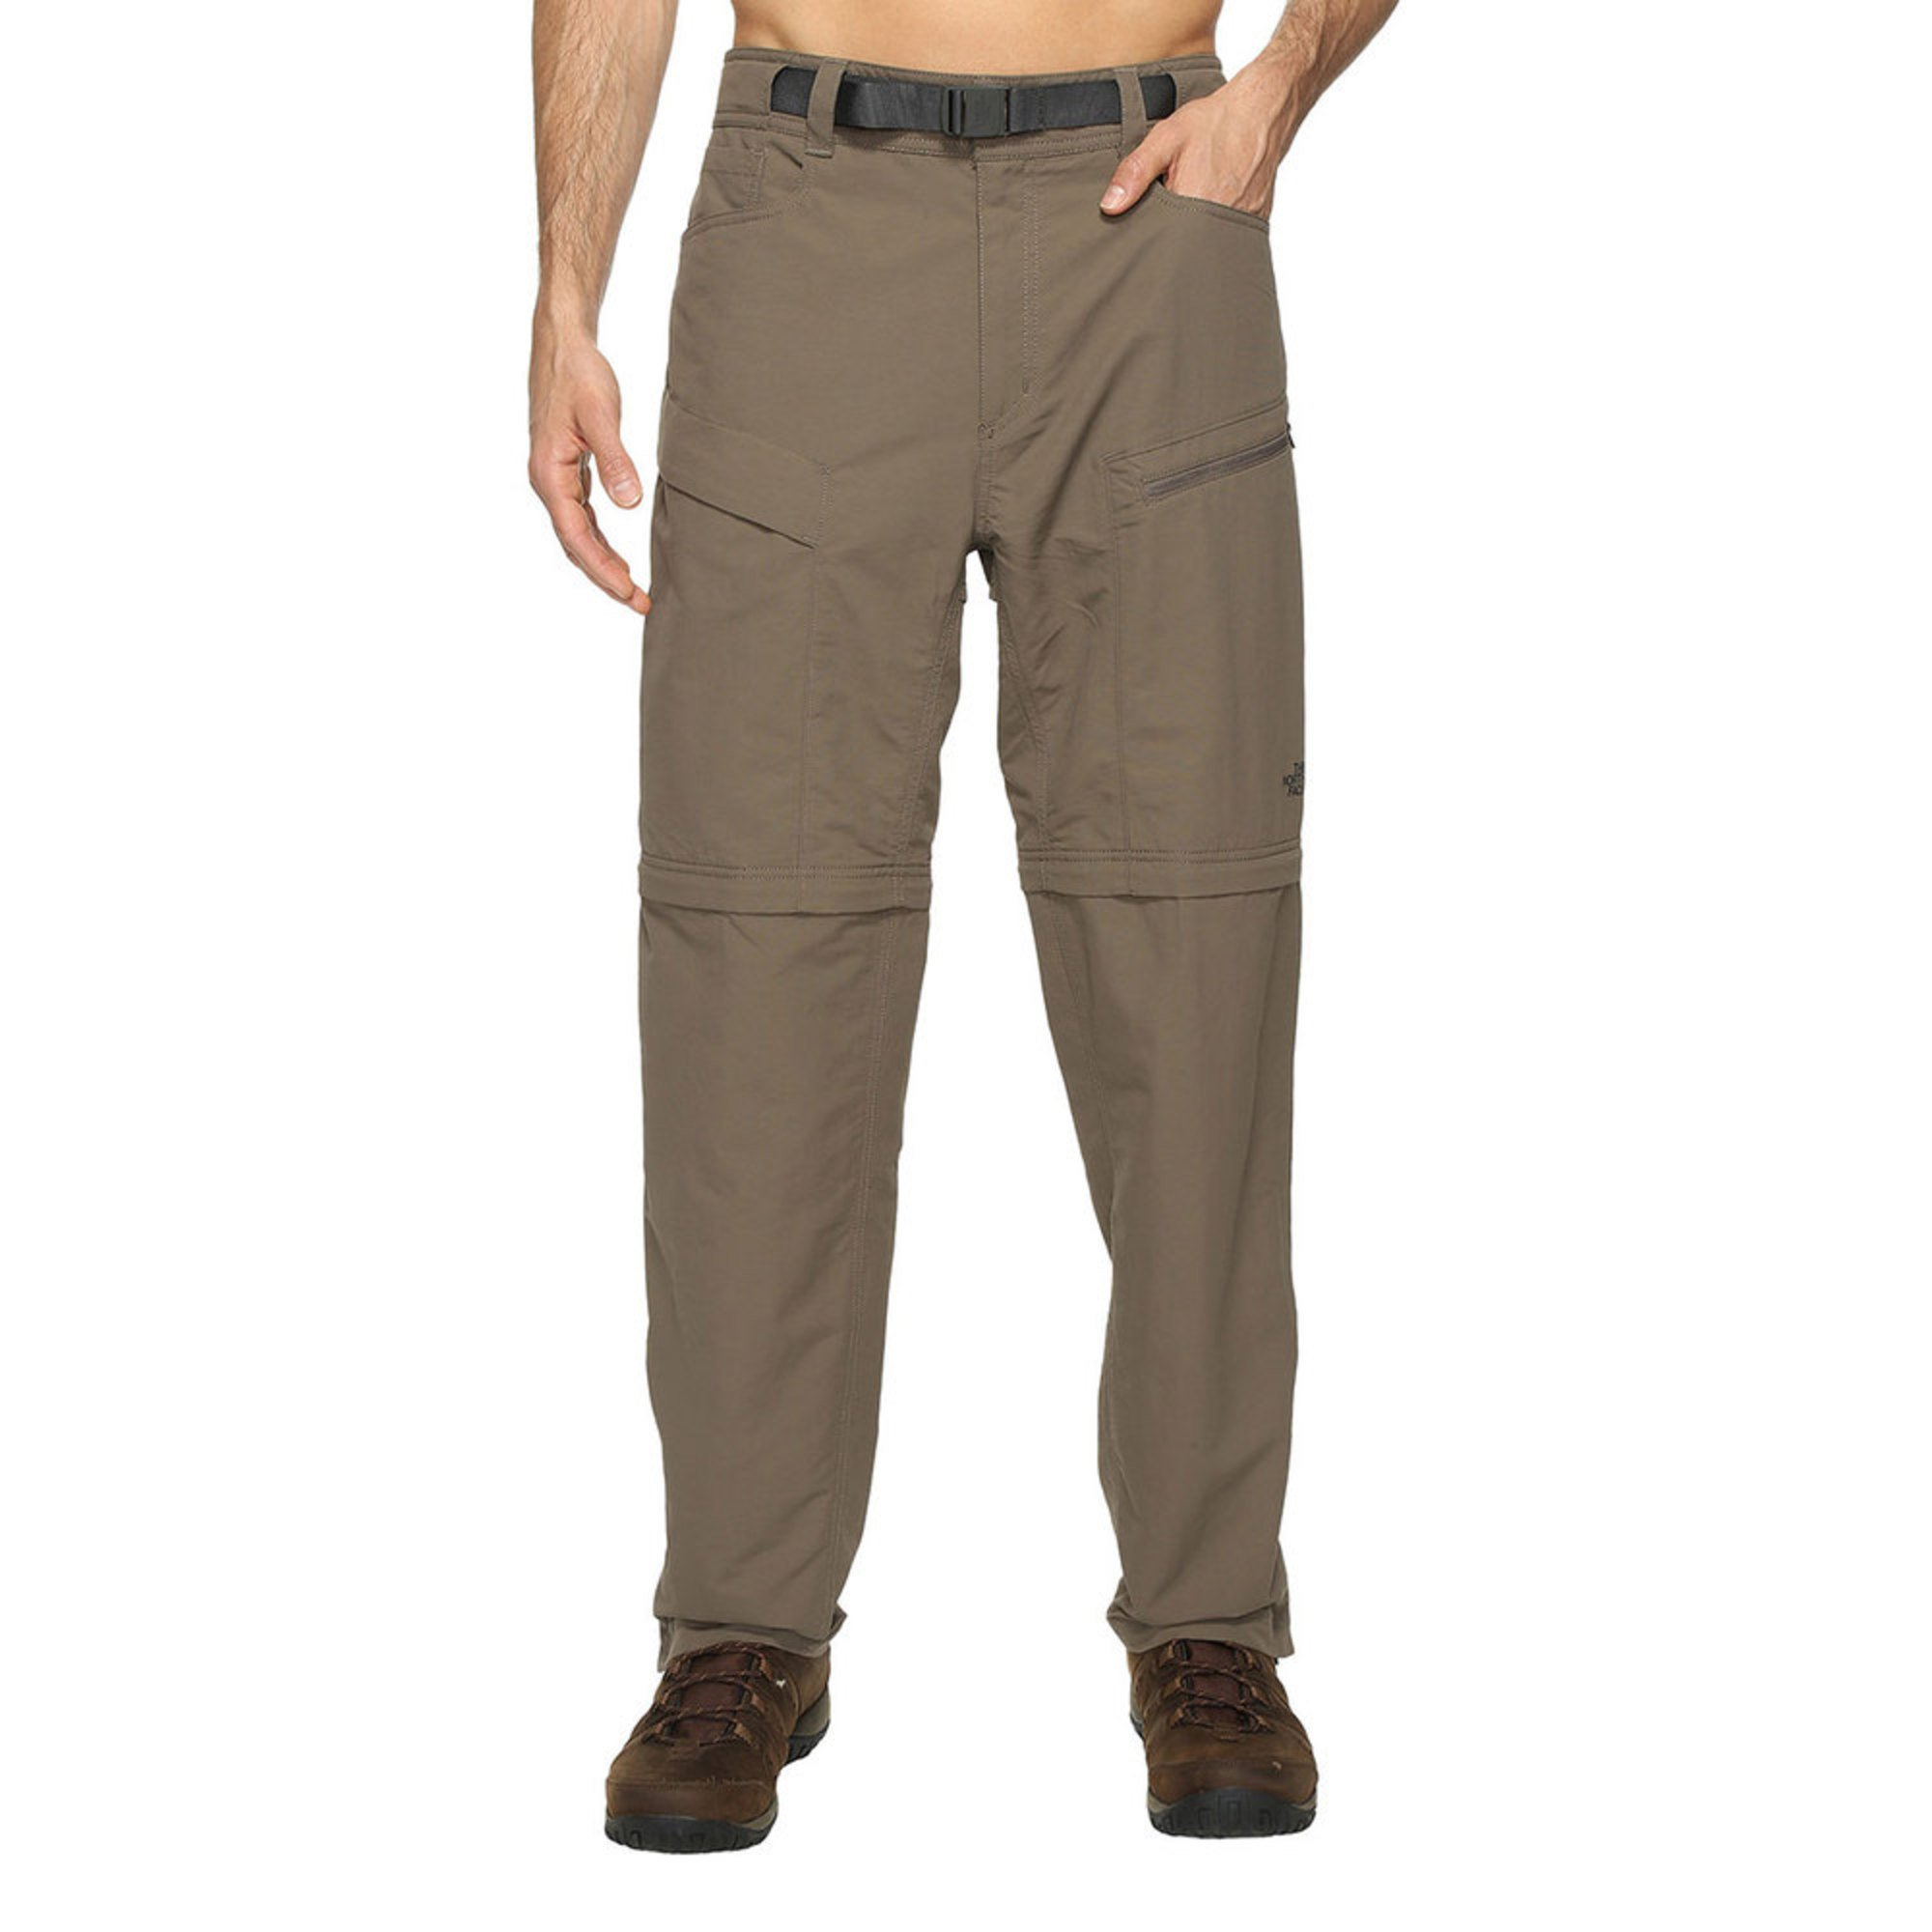 bec6c9c48 The North Face Men's Paramount Trail Pants - Brown